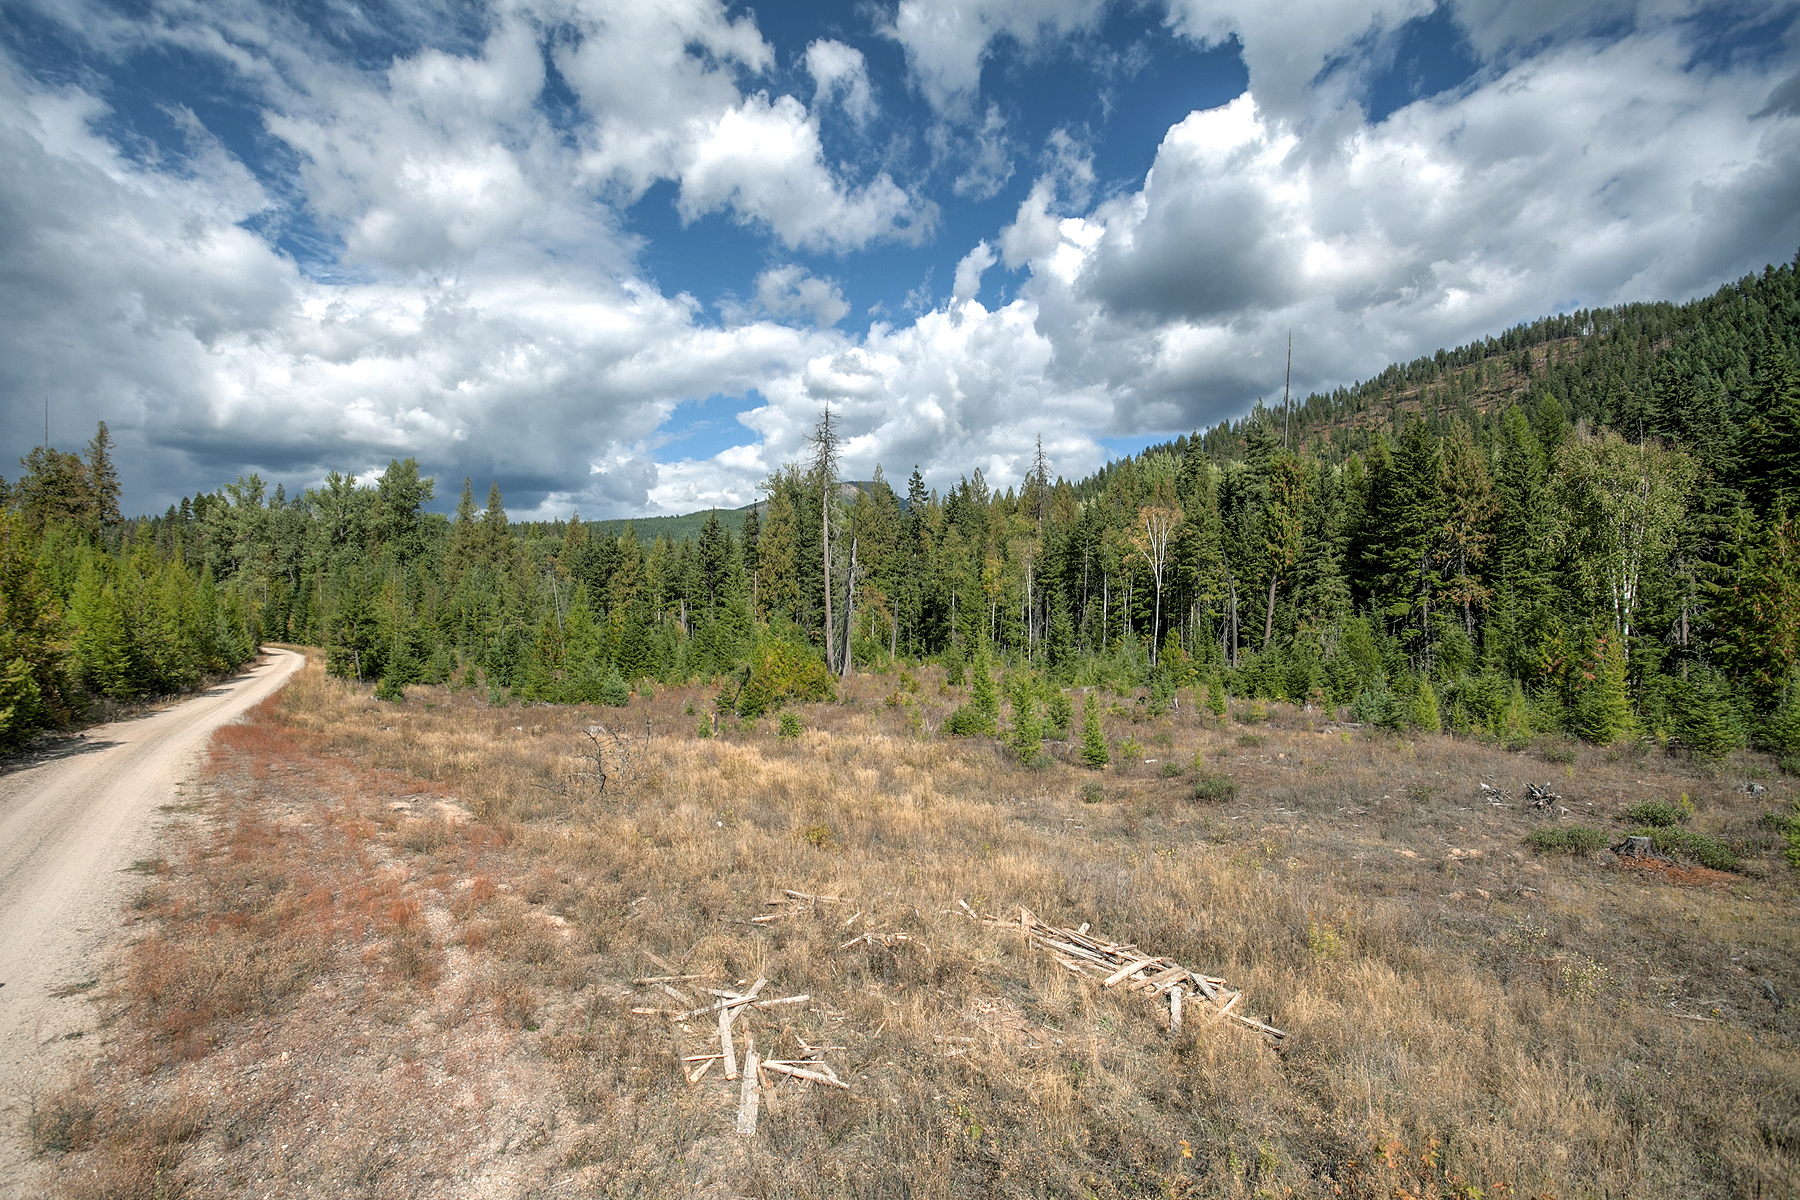 Land for Sale at BUSHWOOD ESTATES Lot 7 1406 Lost Creek Rd Coolin, Idaho, 83821 United States